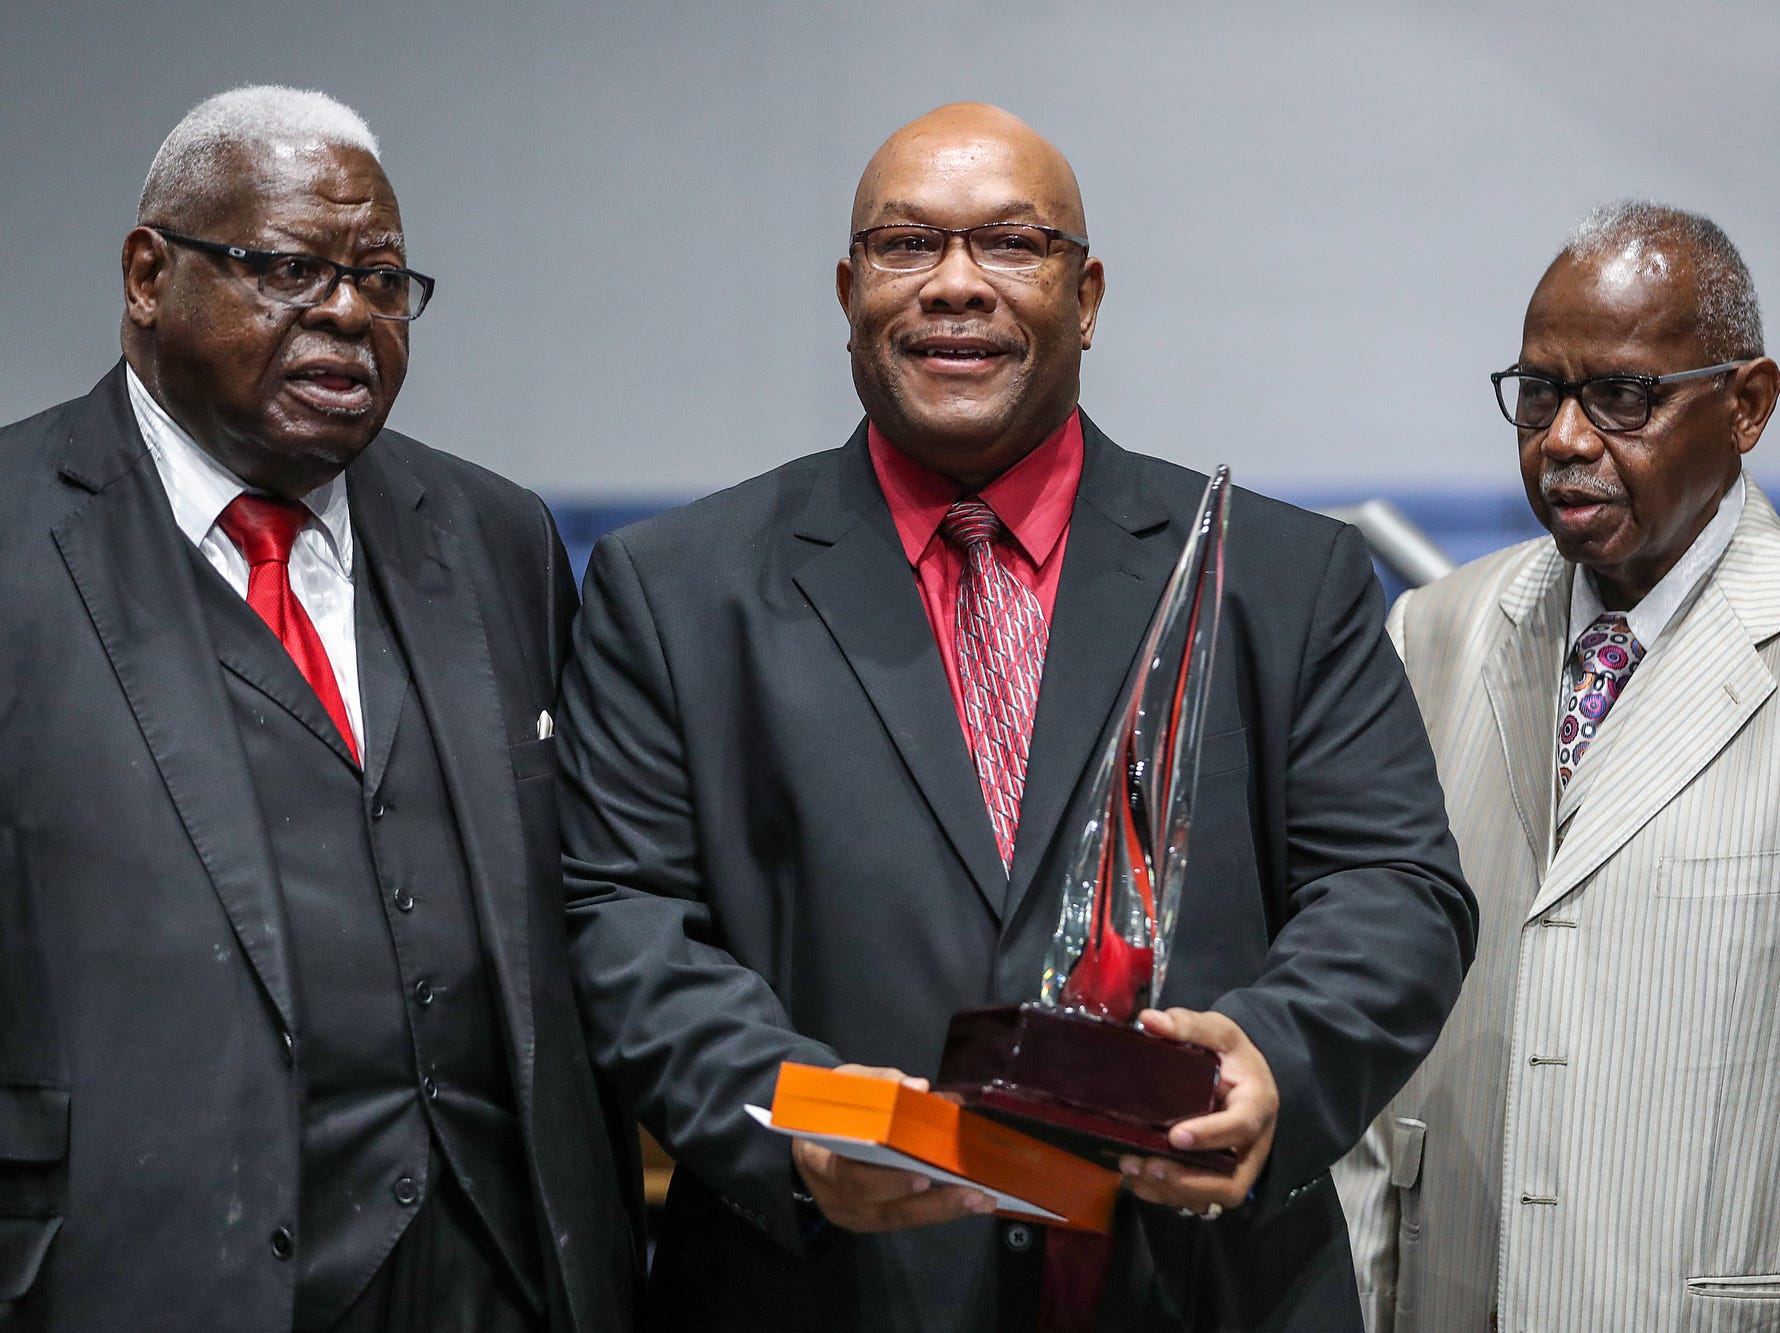 Rev. Dr. Fitzhugh Lyons, Rev. Darryl Taylor and Rev. Dr. Melvin Girton pose for a photo, after Taylor received the Dr. Andrew J. Brown Clergy Person of the Year Award, during a service celebrating the anniversary of the Emancipation Proclamation at Olivet Missionary Baptist Church in Indianapolis, Tuesday, Jan. 1, 2019. Taylor is Pastor of Paraclete Life at Arlington Heights Baptist Church.